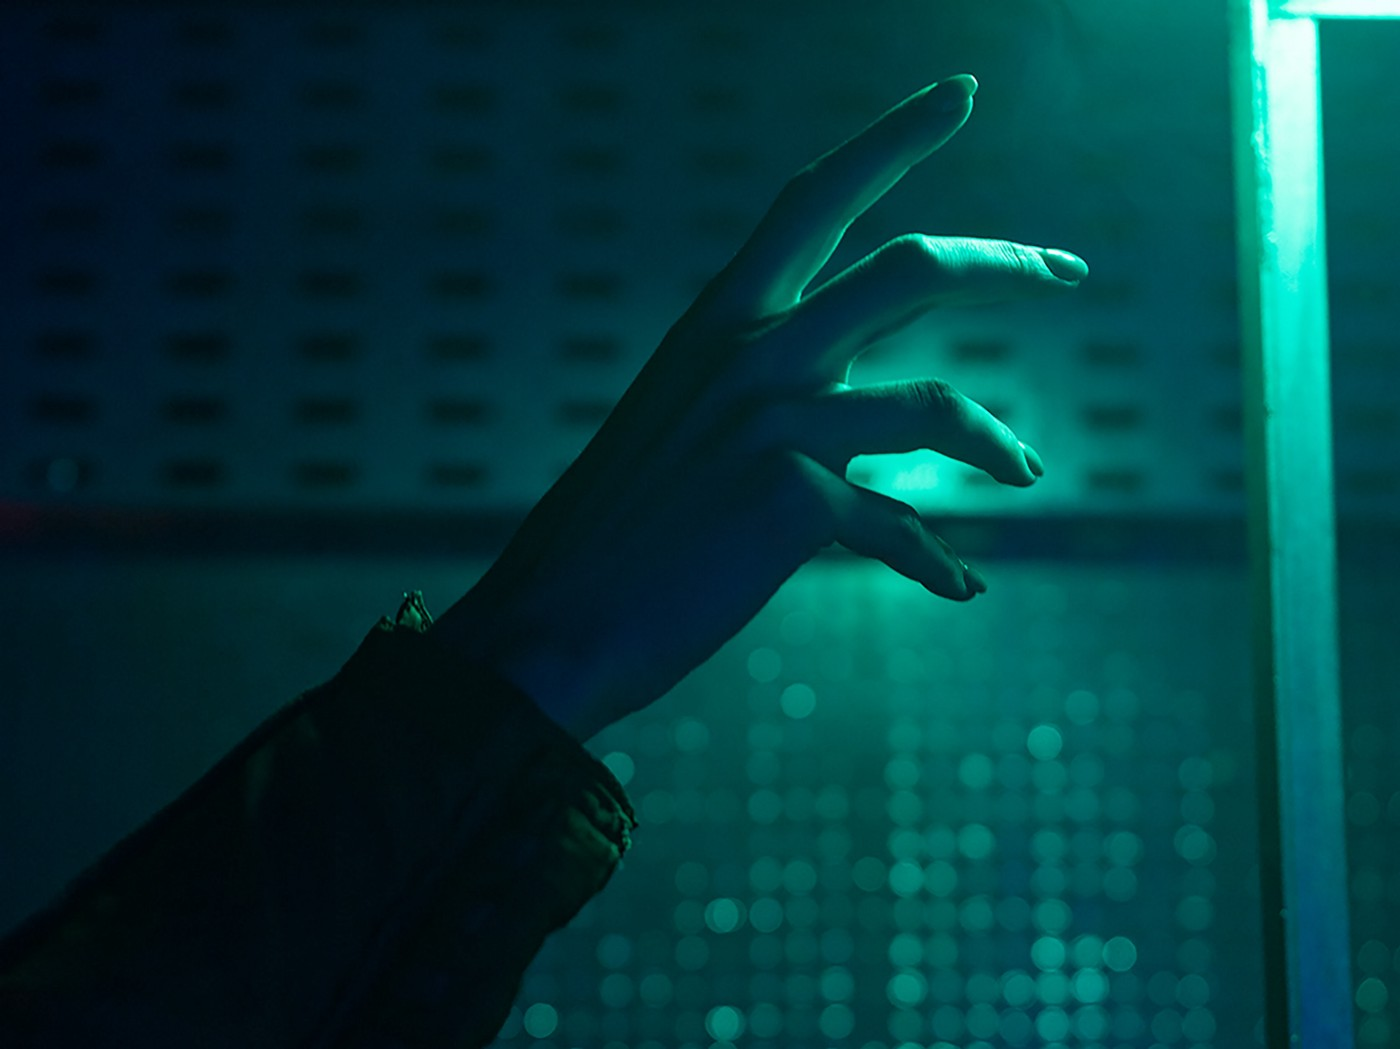 Hand reaches towards a green tinted light in an industrial, high tech background